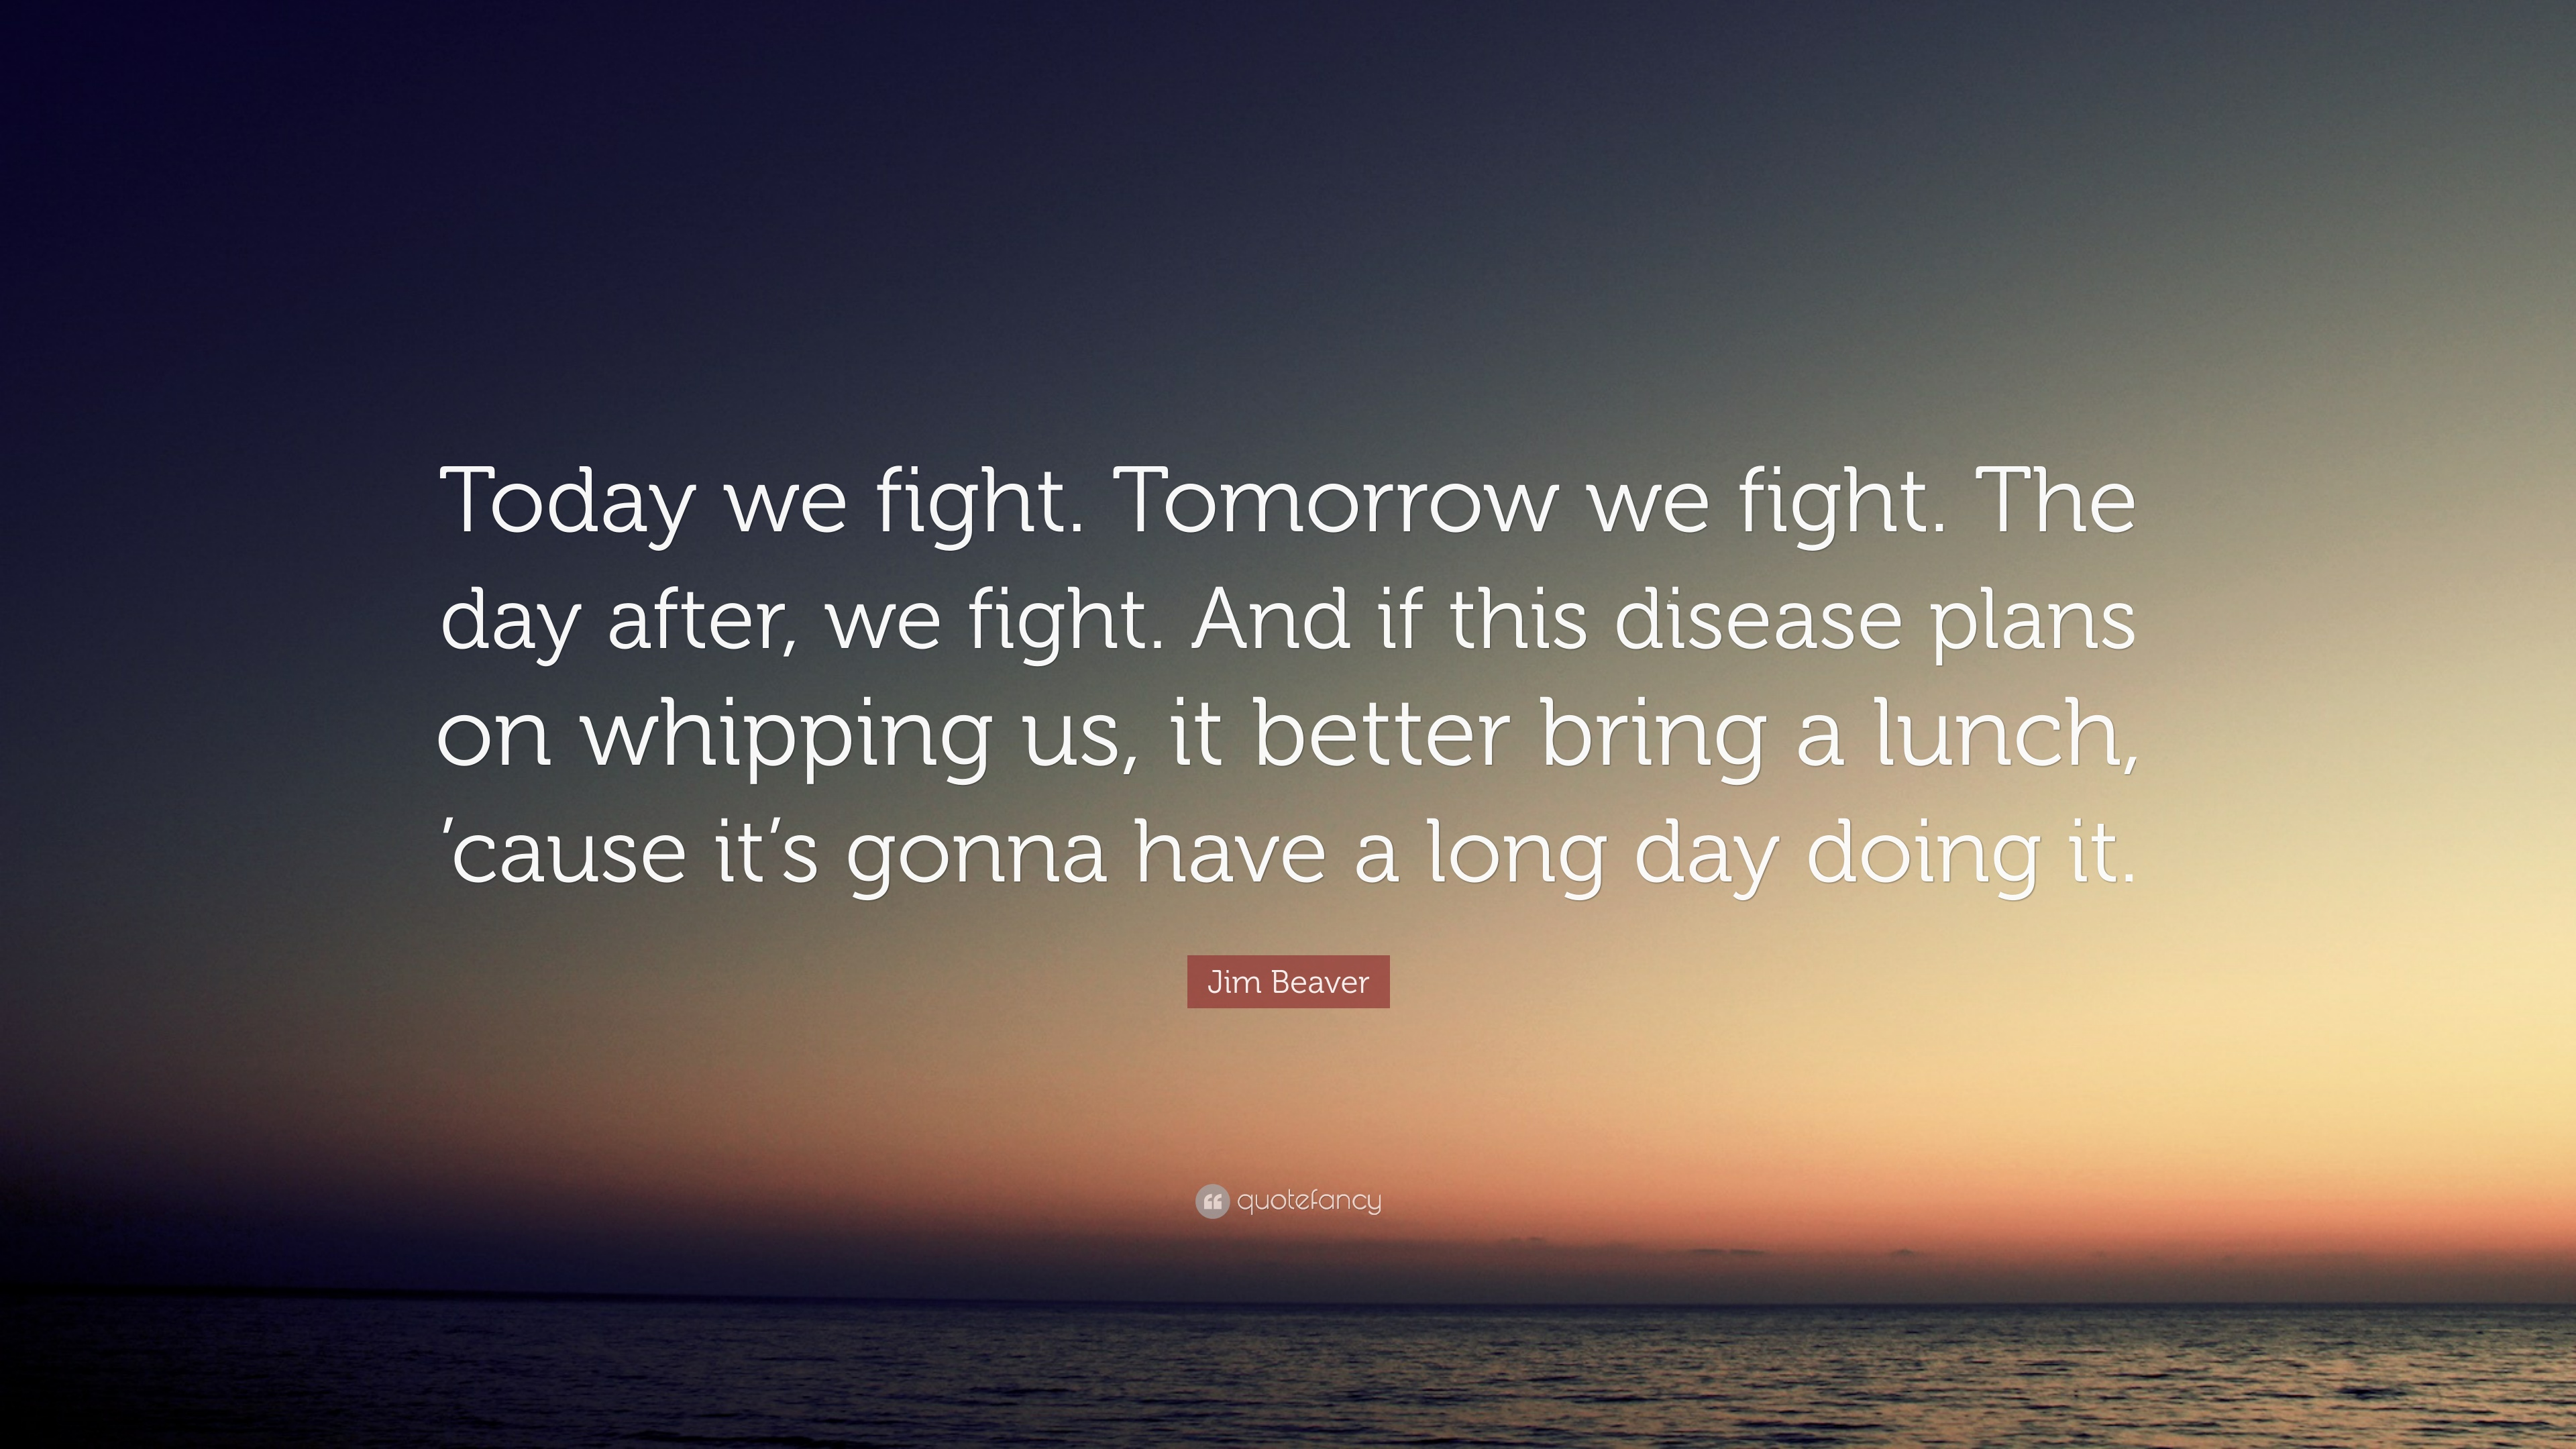 Jim Beaver Quote Today We Fight Tomorrow We Fight The Day After